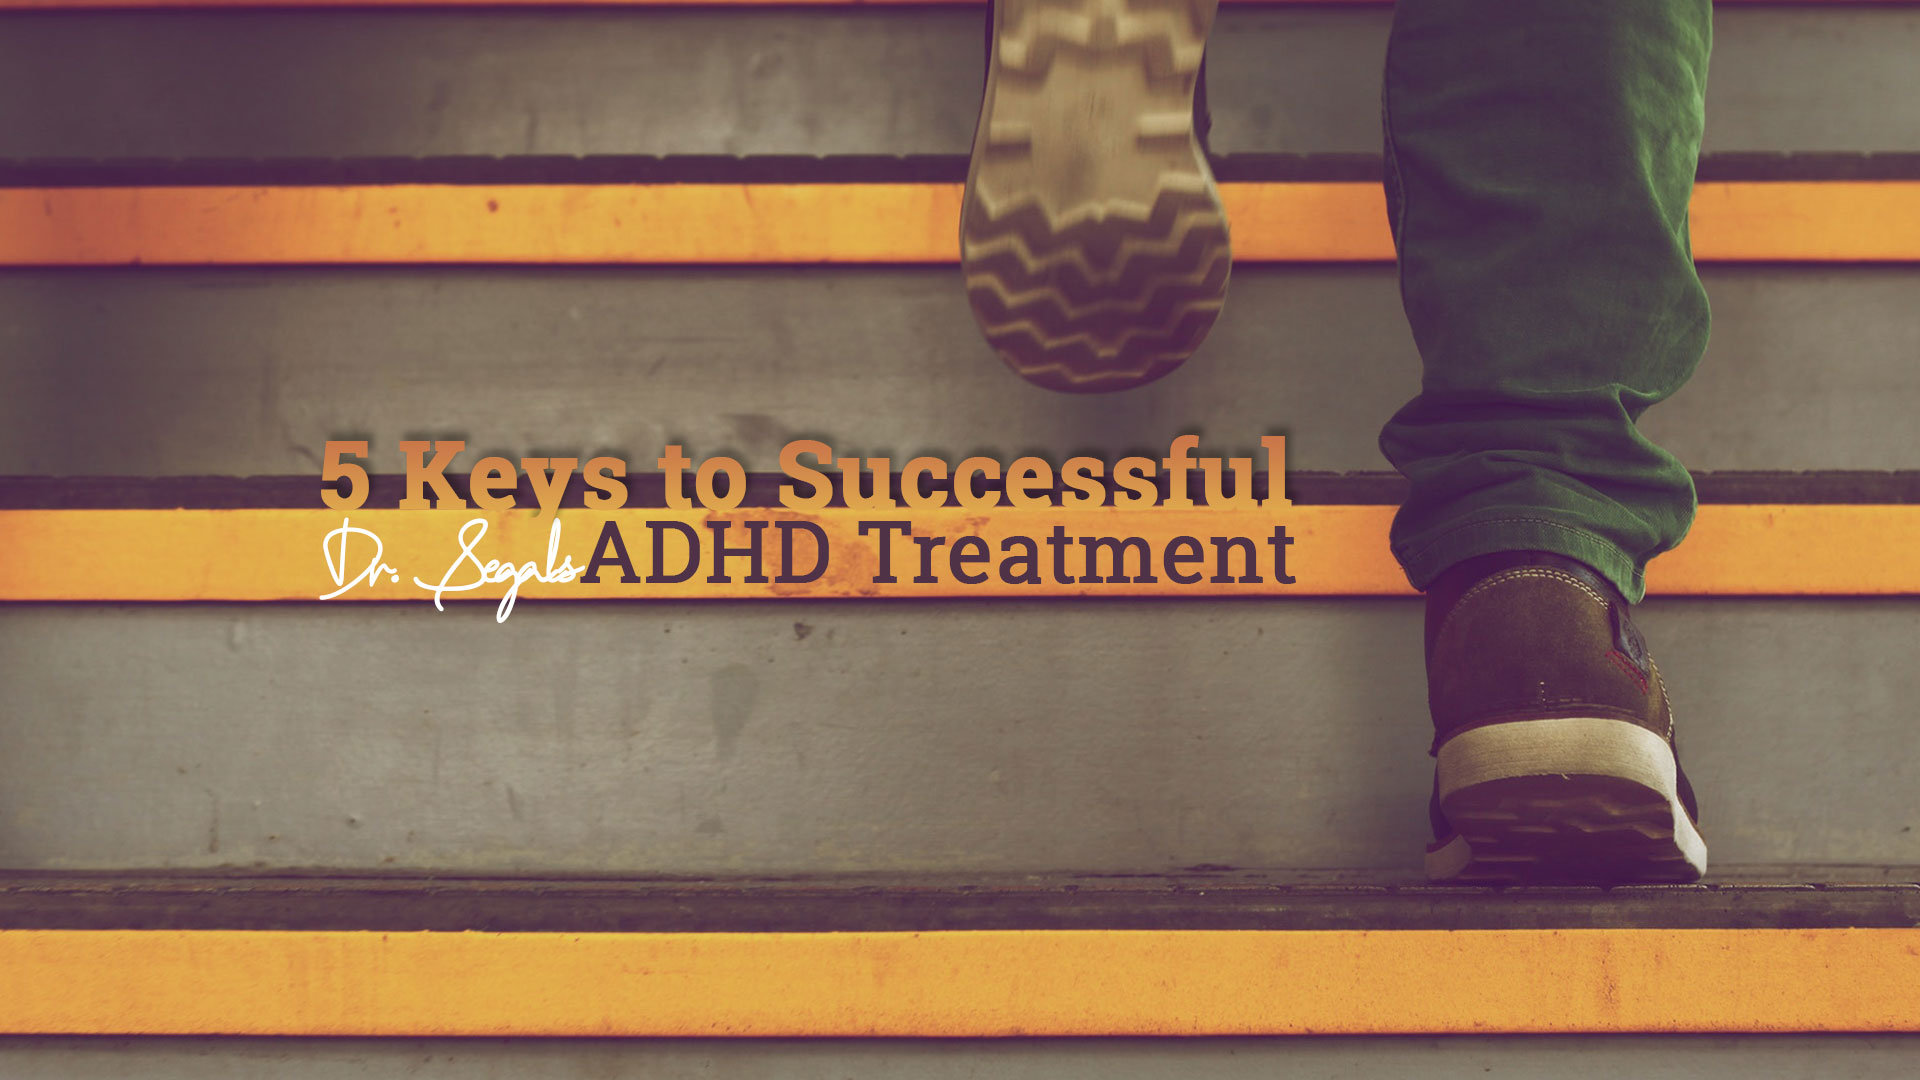 Dr. Segal's 5 Keys to Successful ADHD Treatment